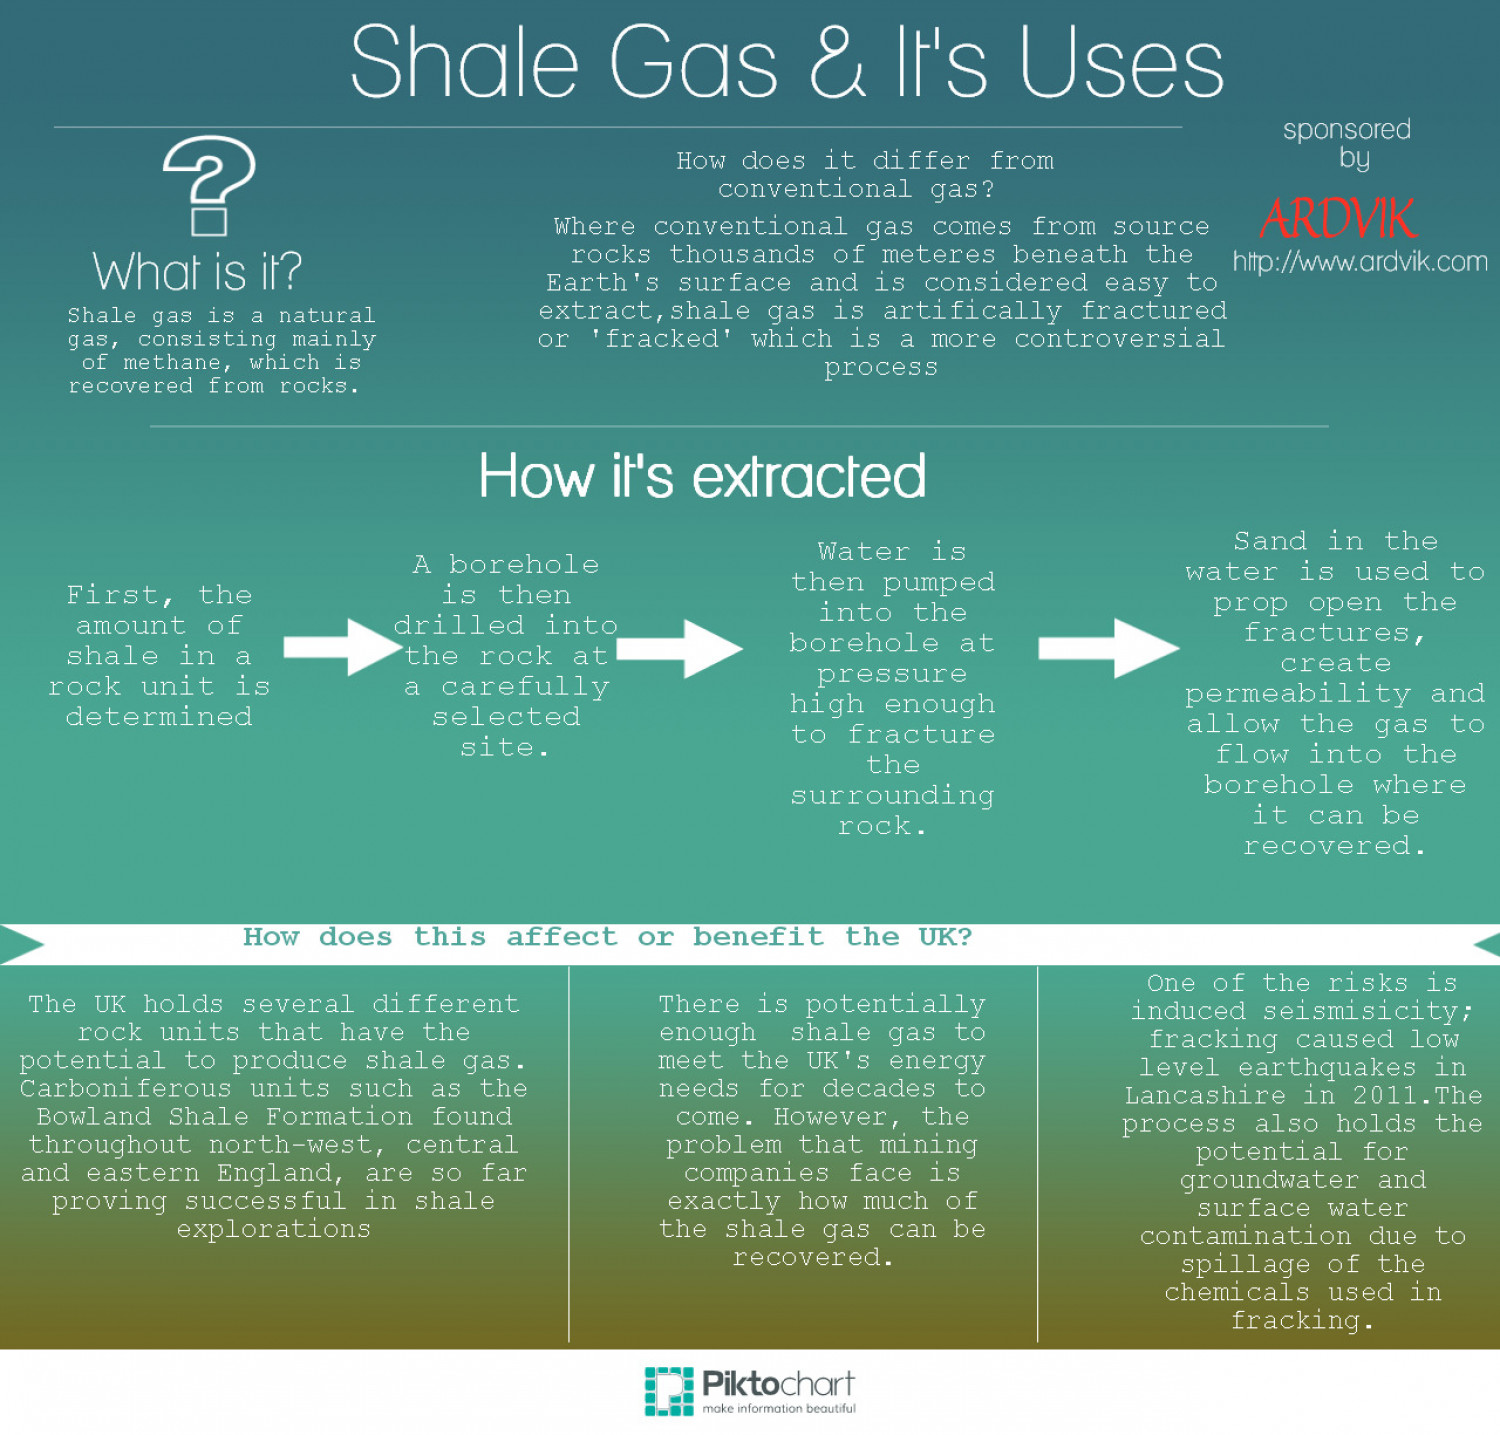 Shale Gas and Its Uses  Infographic